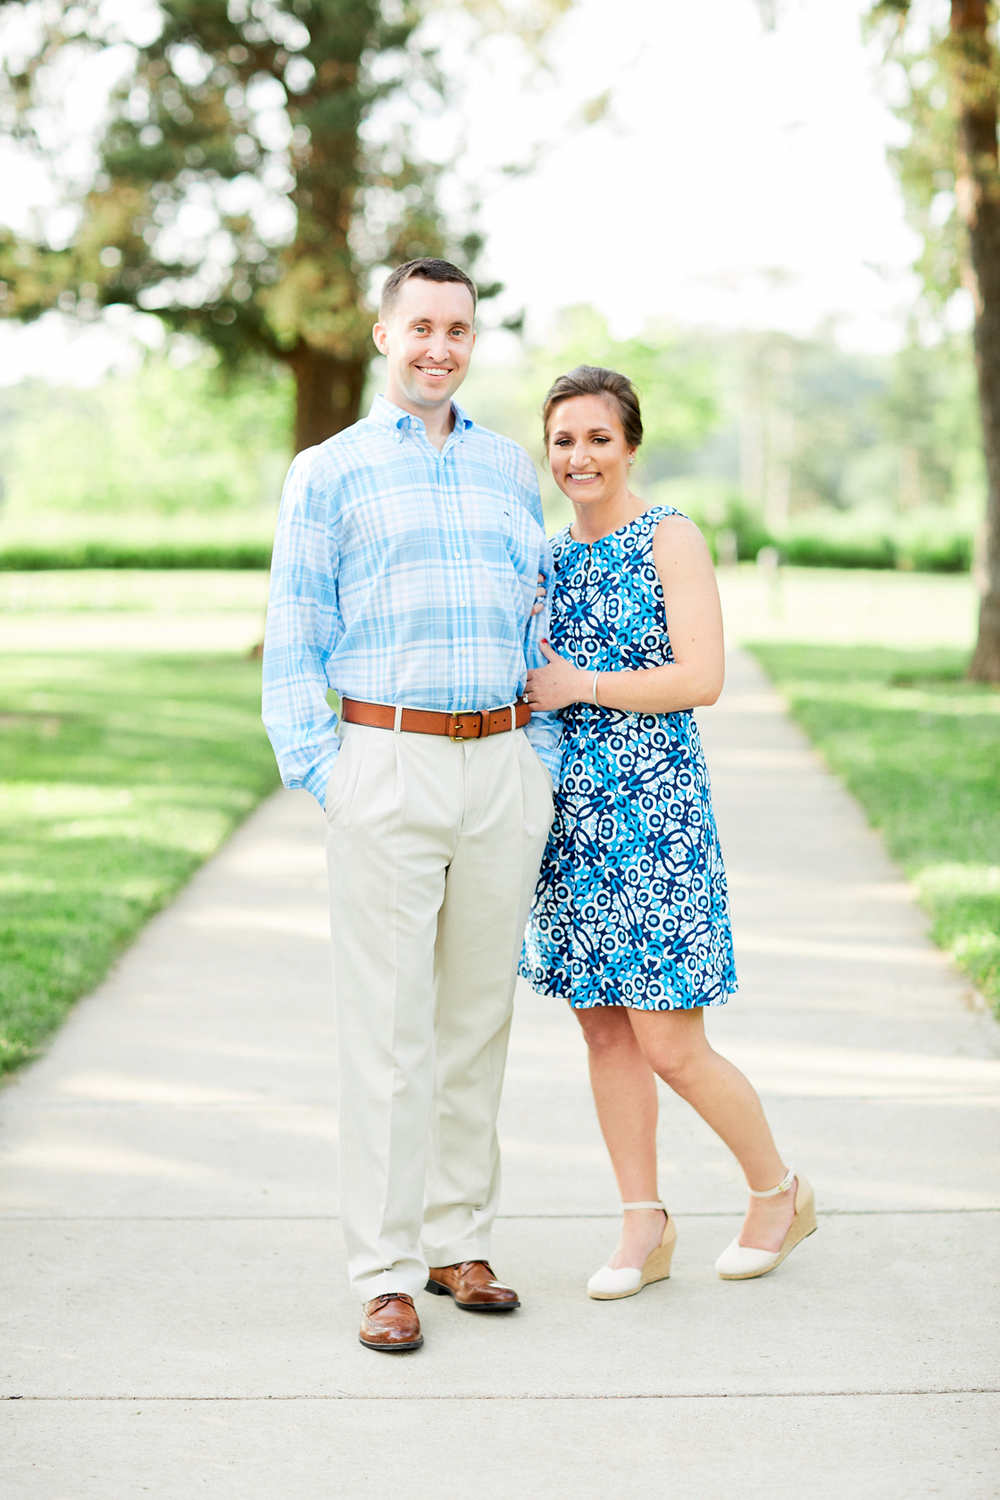 Forest Park St Louis Engagement Session in St Charles County by Oldani Photography St. Louis Wedding Photographers 2.jpg